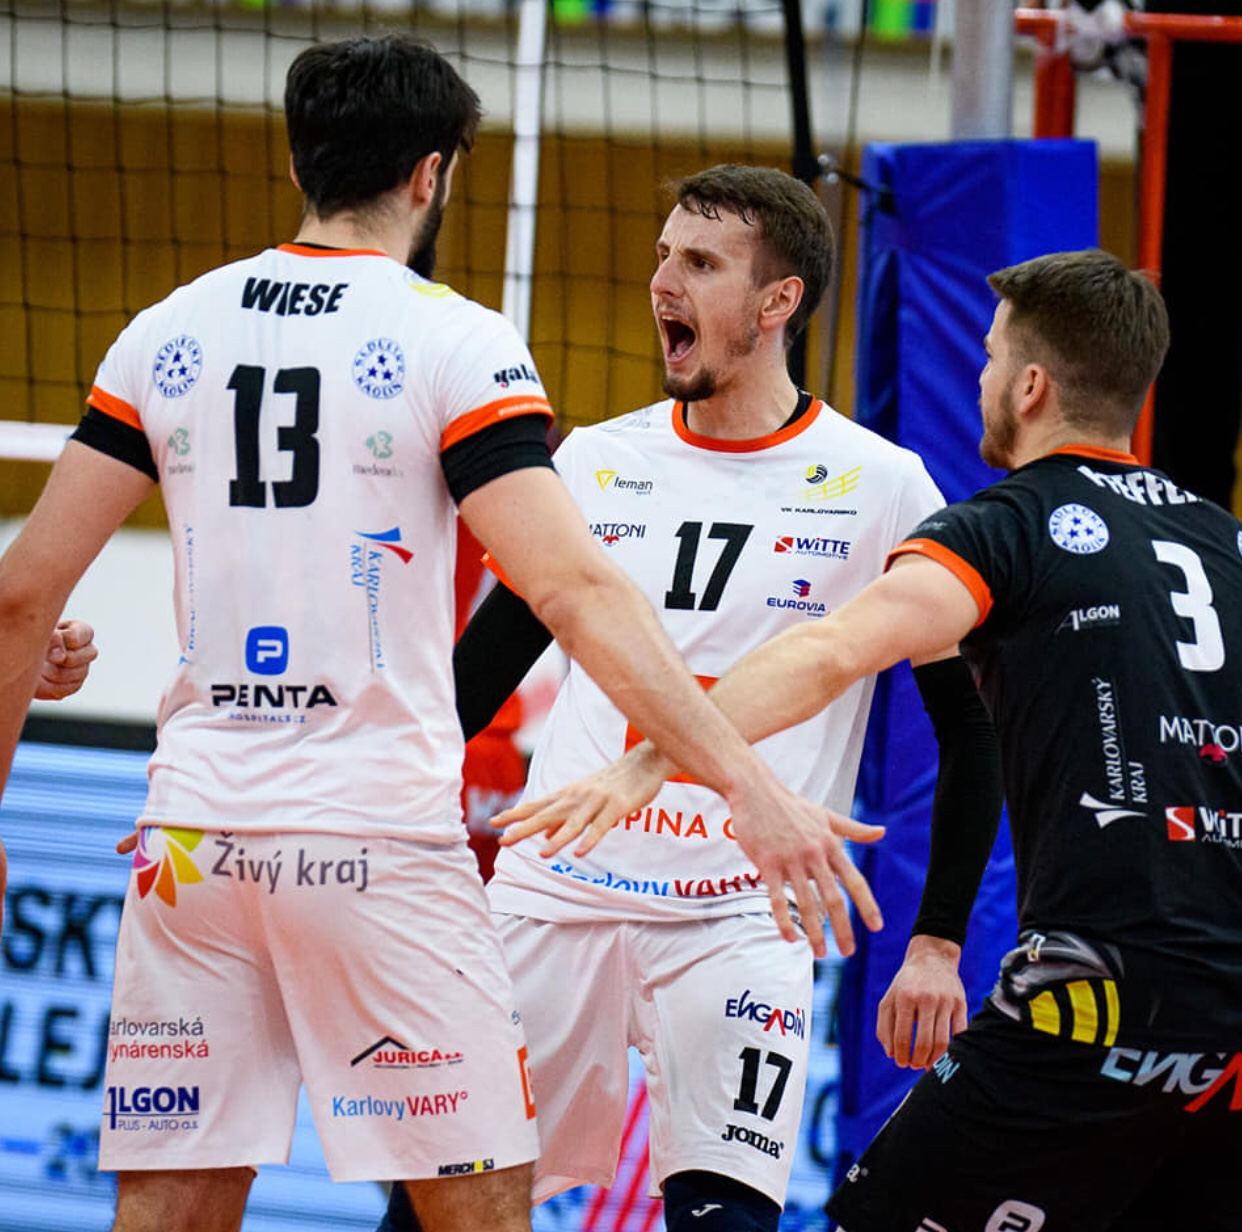 Czech Republic: Karlovarsko wins title in decisive Game 5